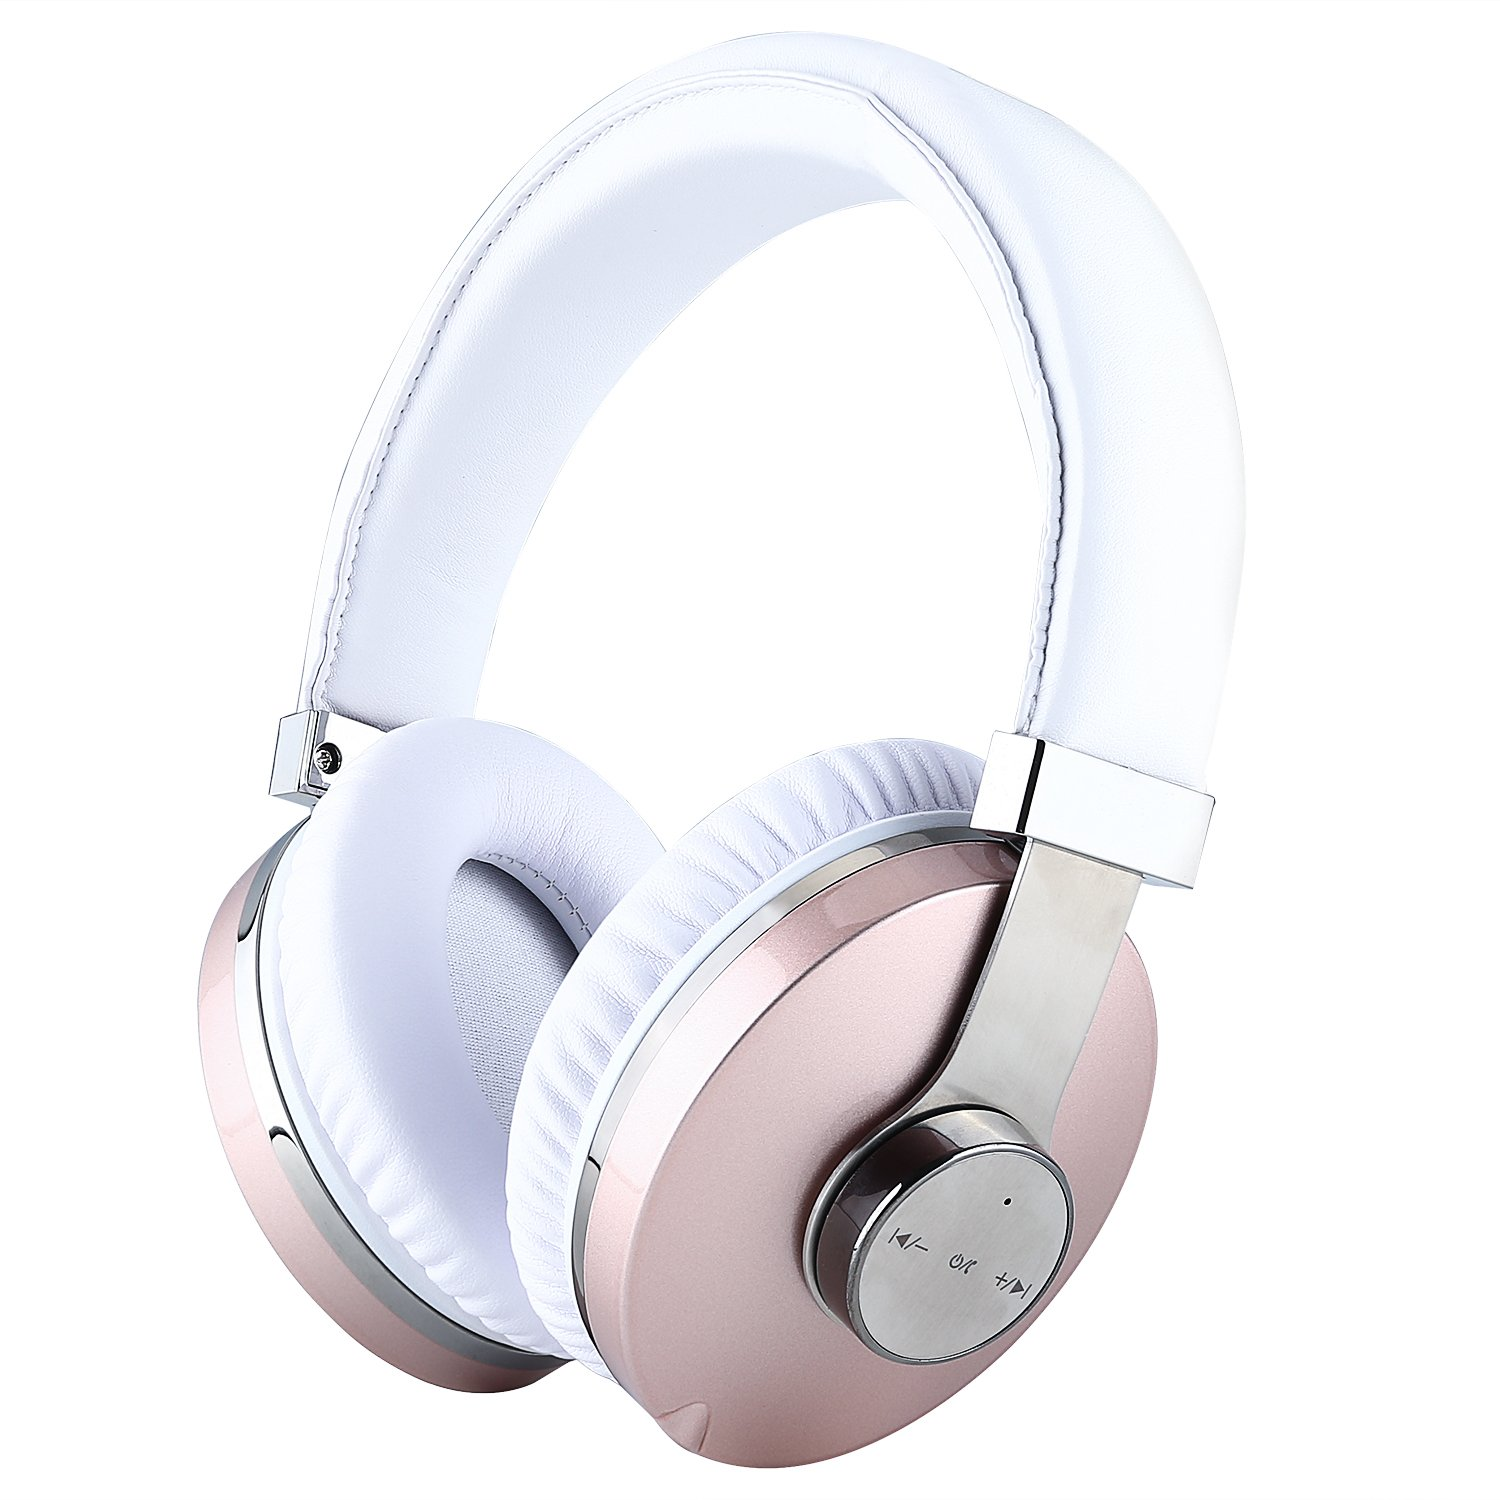 Bluetooth Headphones Over Ear, Mee'sport Music Wireless Headset with Microphone Hi-Fi Deep Bass Wireless Headsets Comfortable Protein Ear Cups 24 Hours Playtime for Travel TV Computer (Rose Gold)